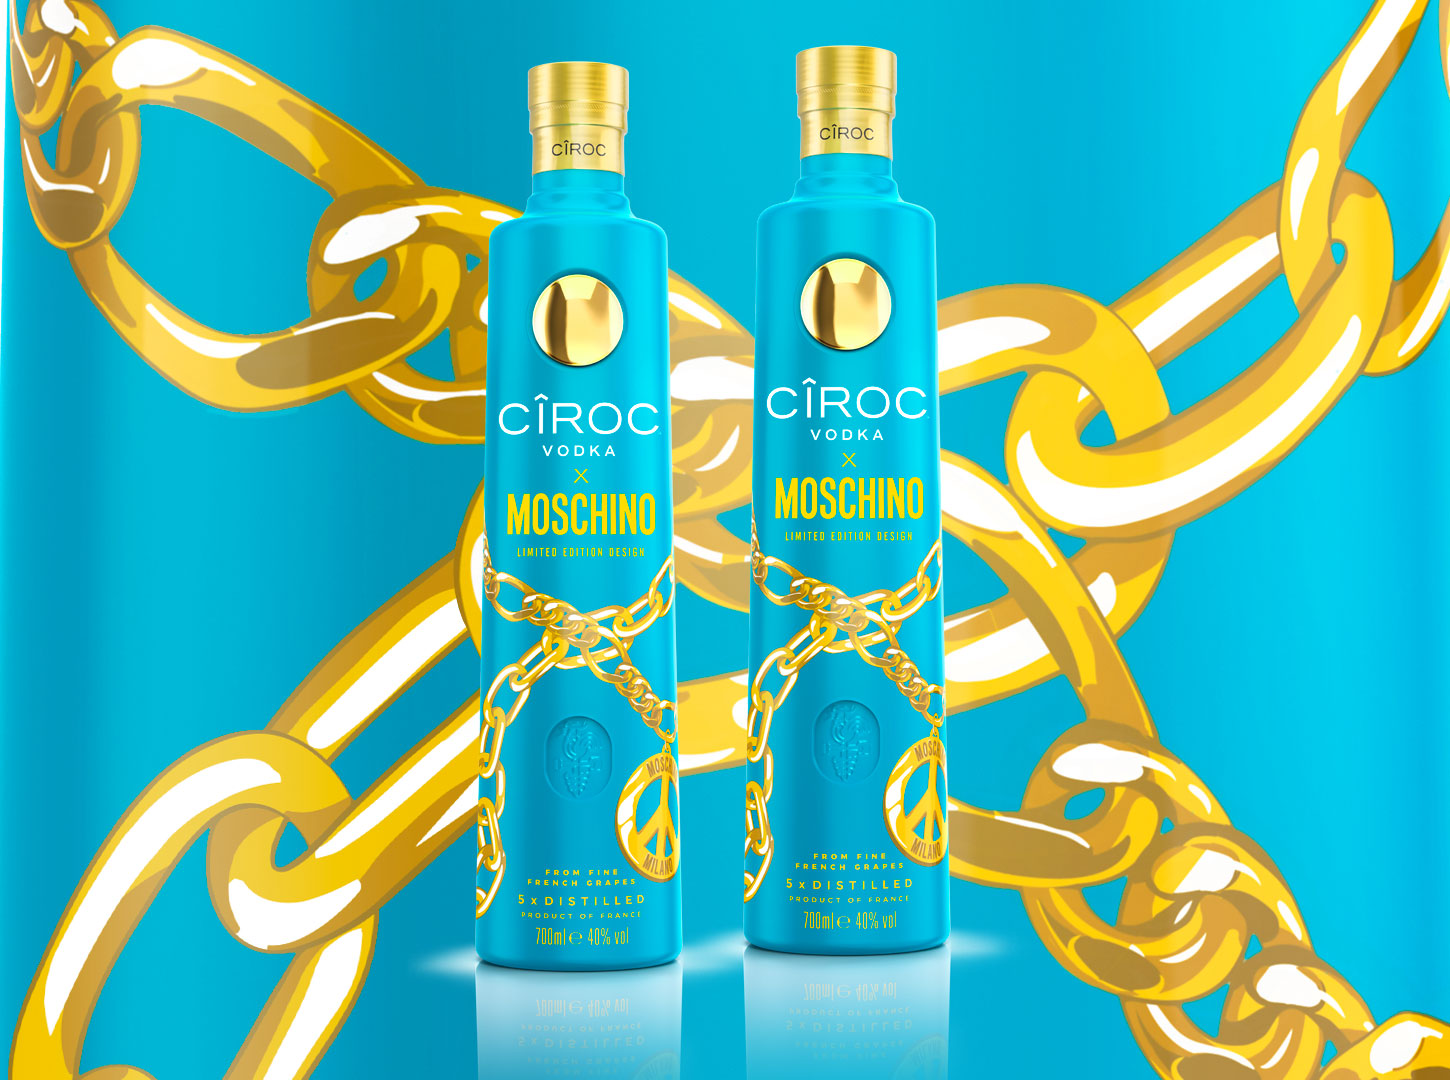 Limited Edition CÎROC X Moschino Vodka